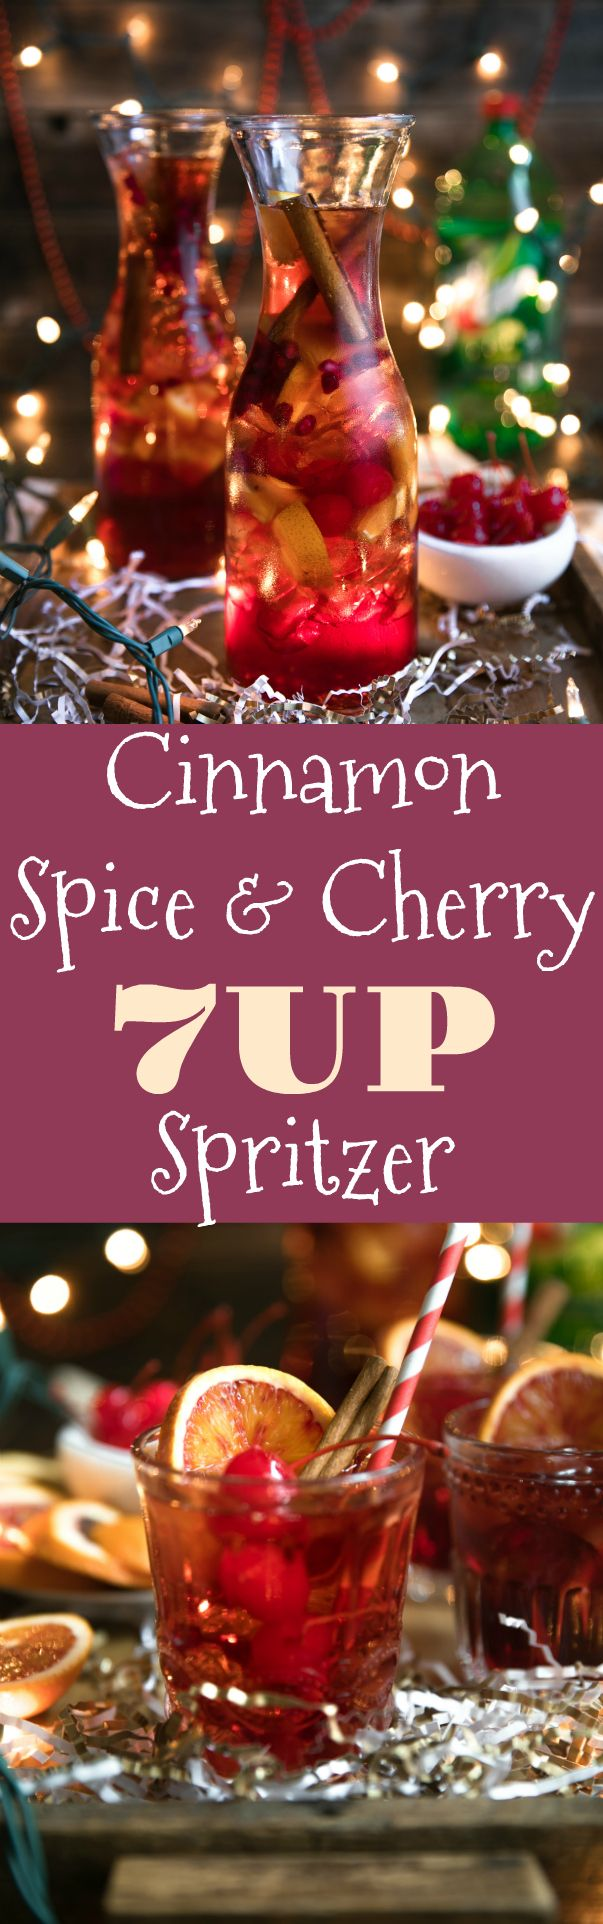 Cinnamon Spice and Cherry 7UP Spritzer #ad Cinnamon liqueur, bourbon, tart cherry juice, fresh orange wedges and sweet bubbly 7UP mix together to make this Cherry and Orange 7UP Spritzer; a delicious holiday cocktail guaranteed to warm you from the inside